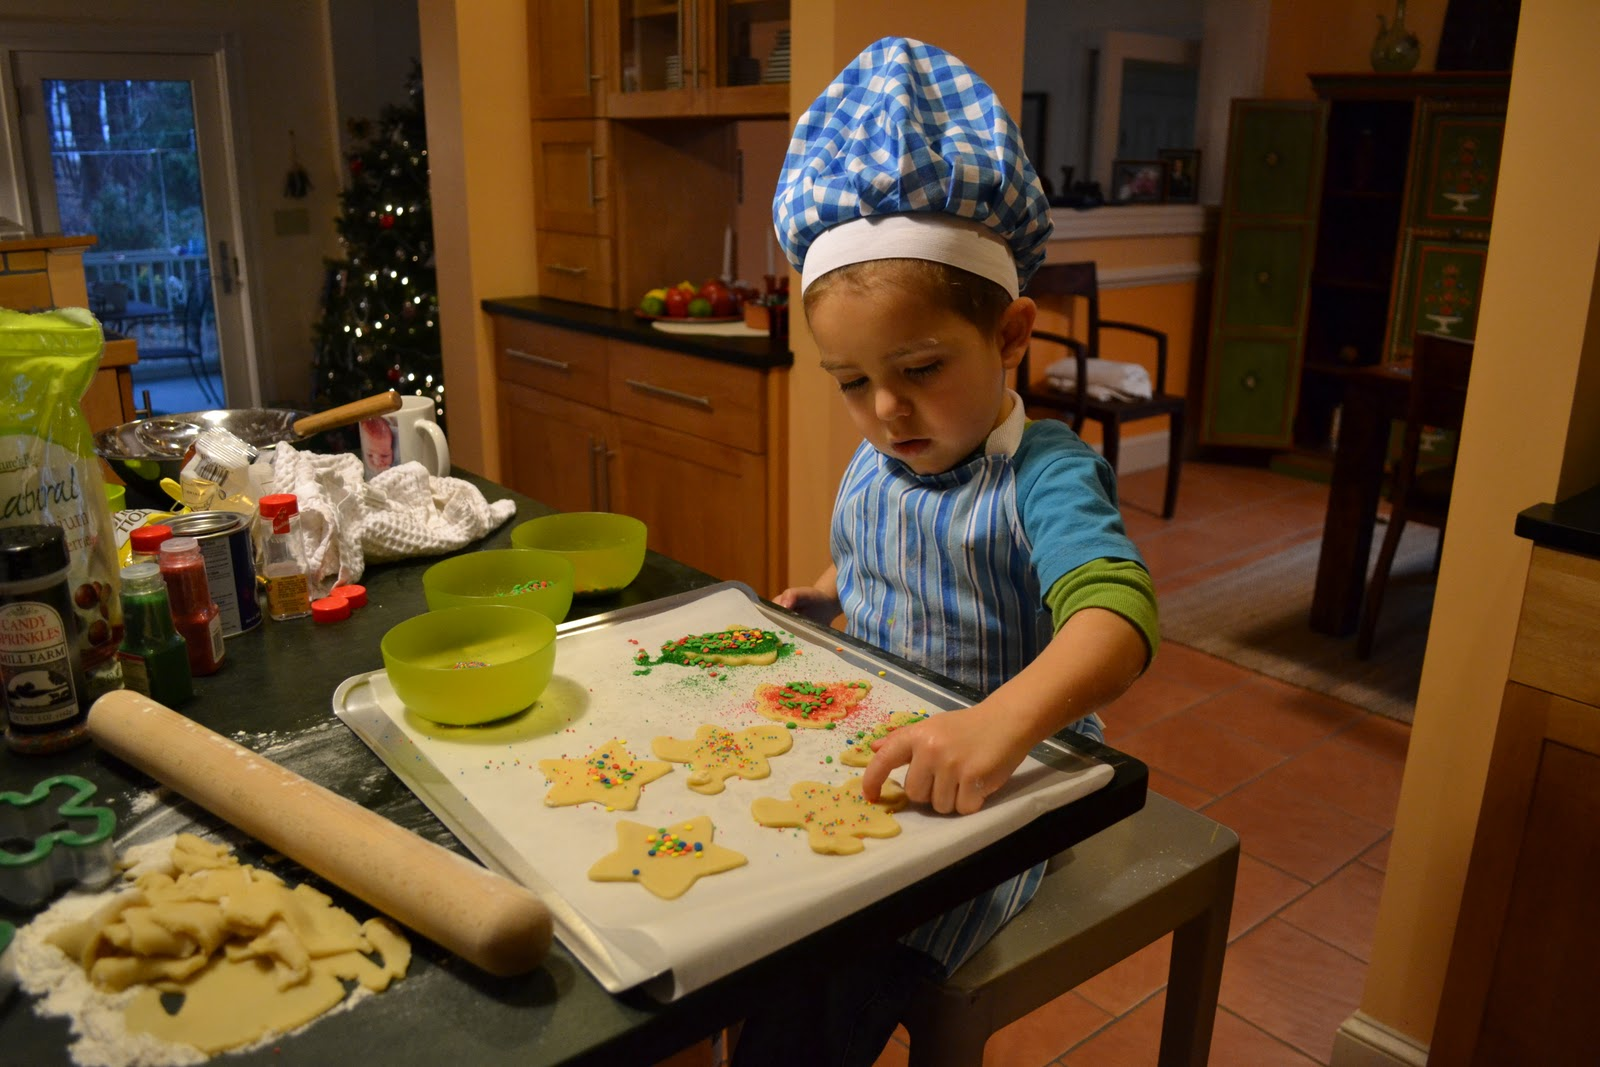 The Joy Of Baking Merrymaking Christmas Cookies Other